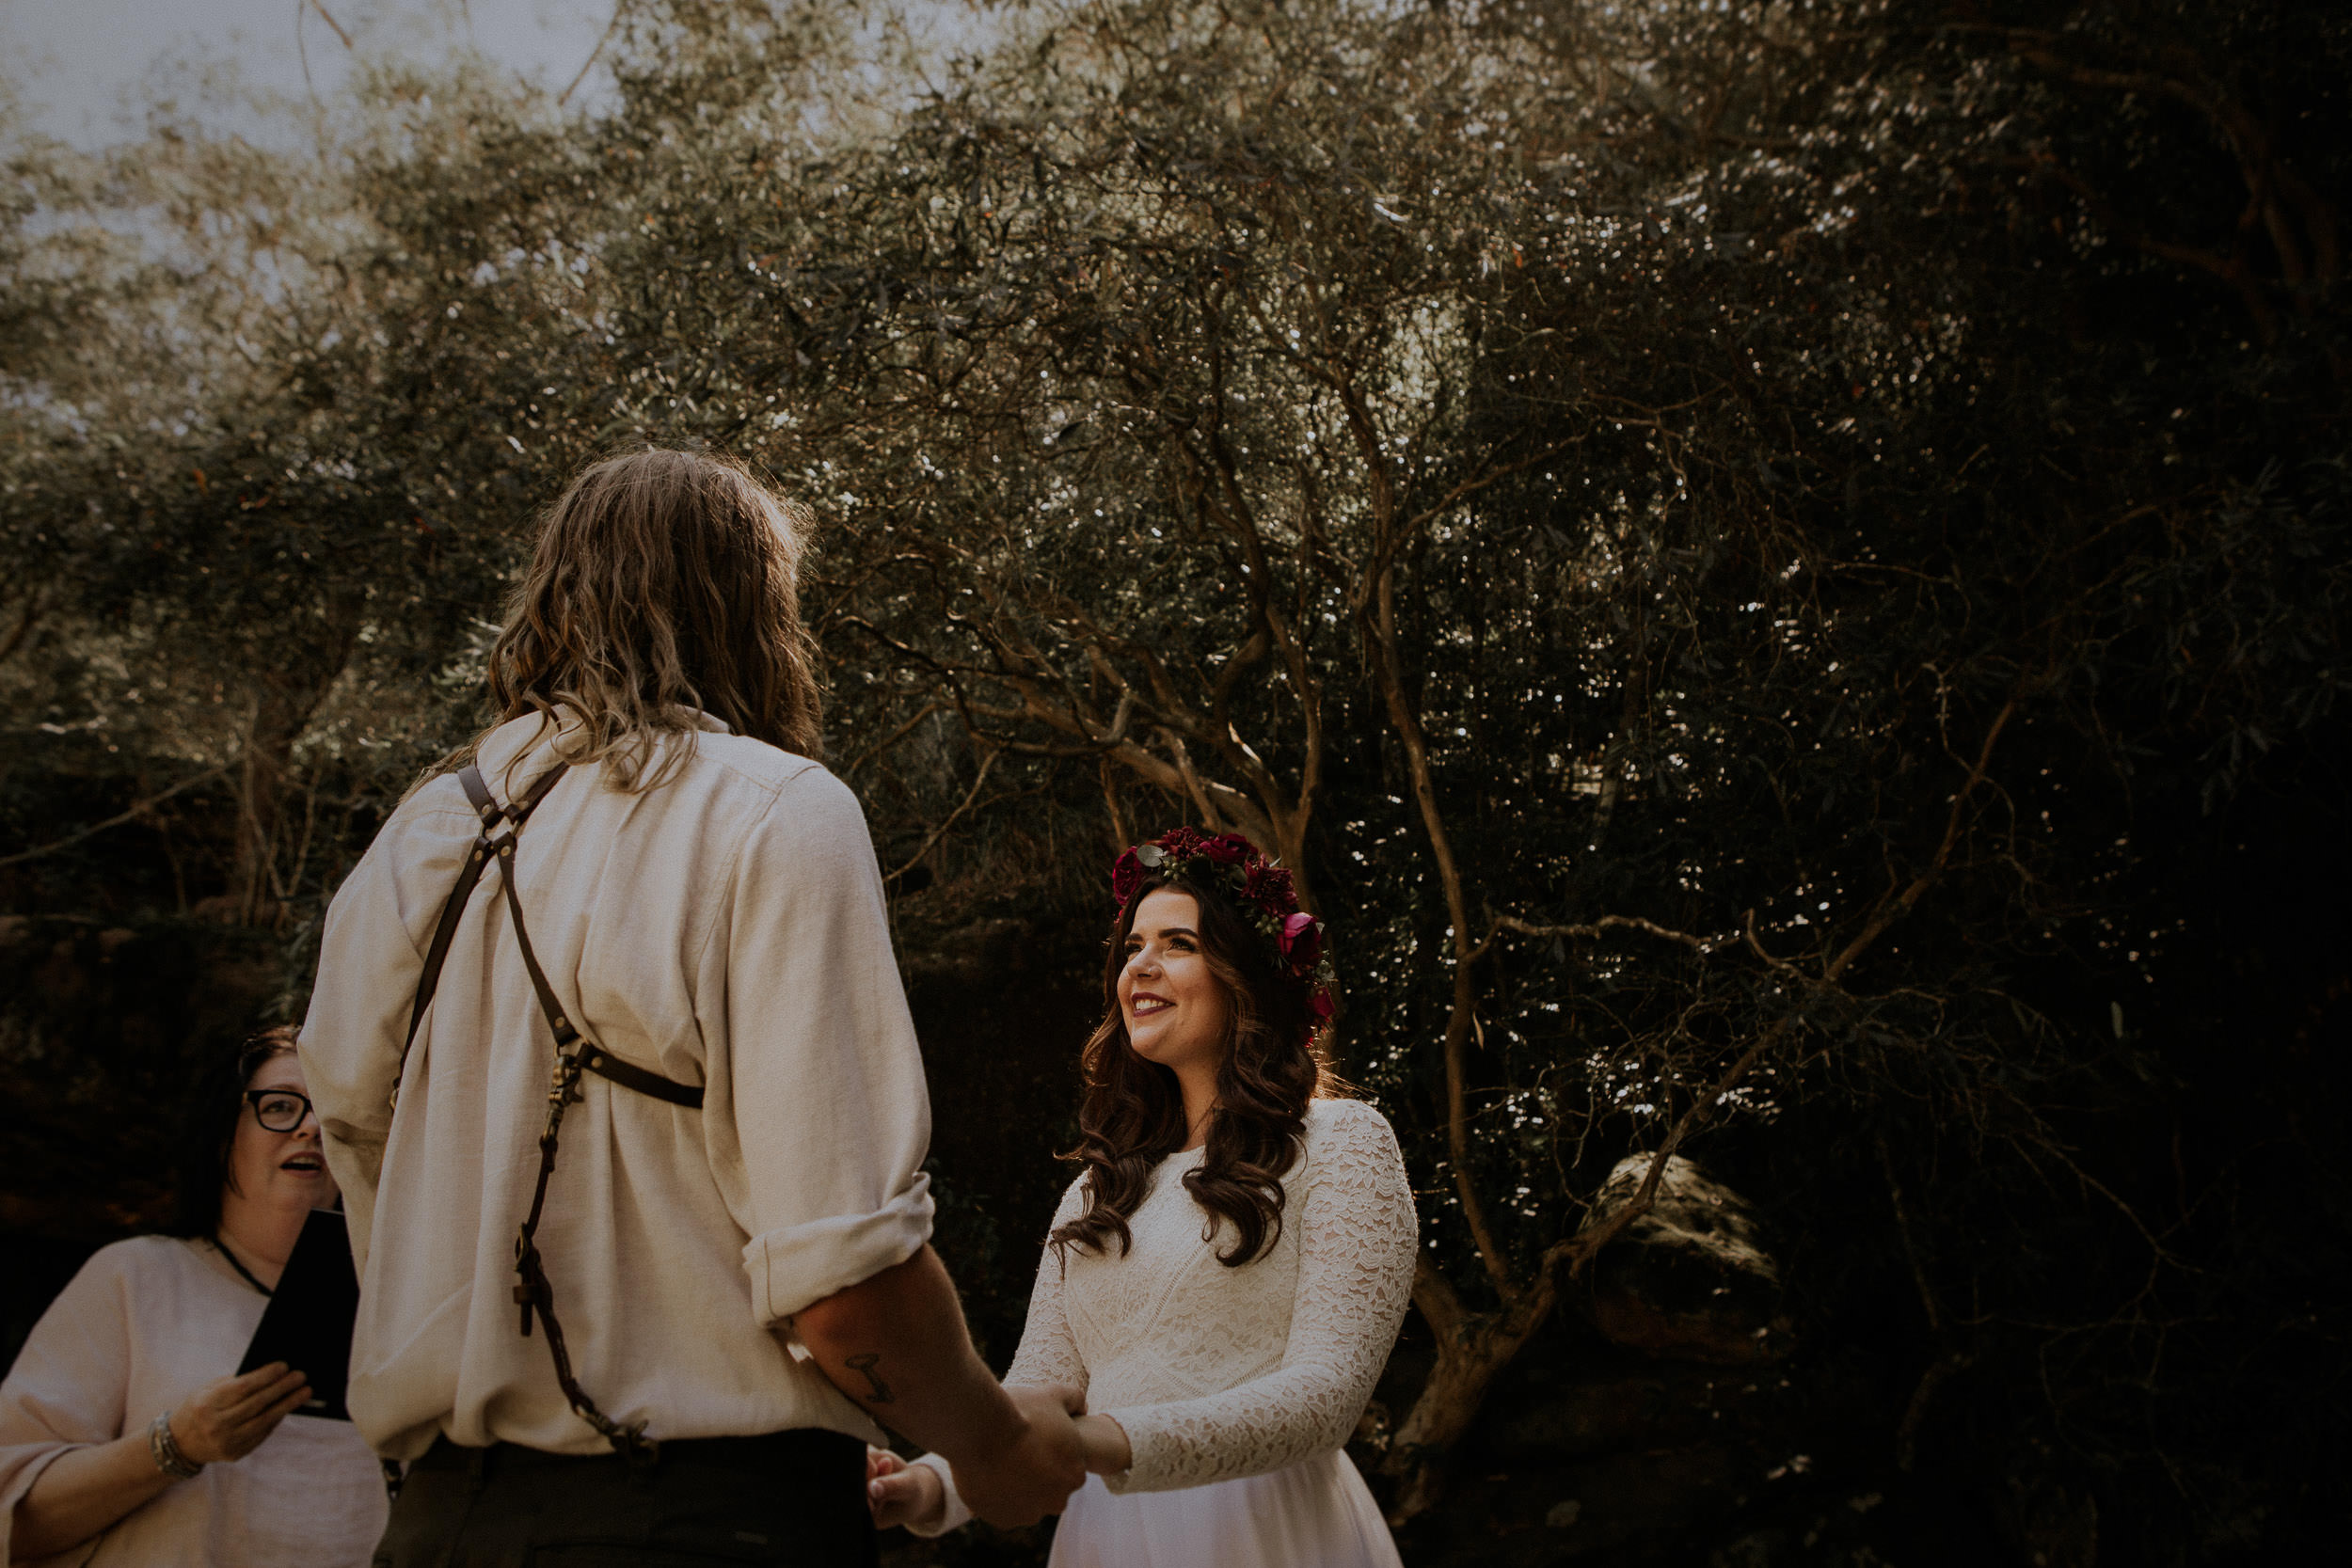 beth & caleb - kings & thieves elopement wedding photography -- submission 94.jpg